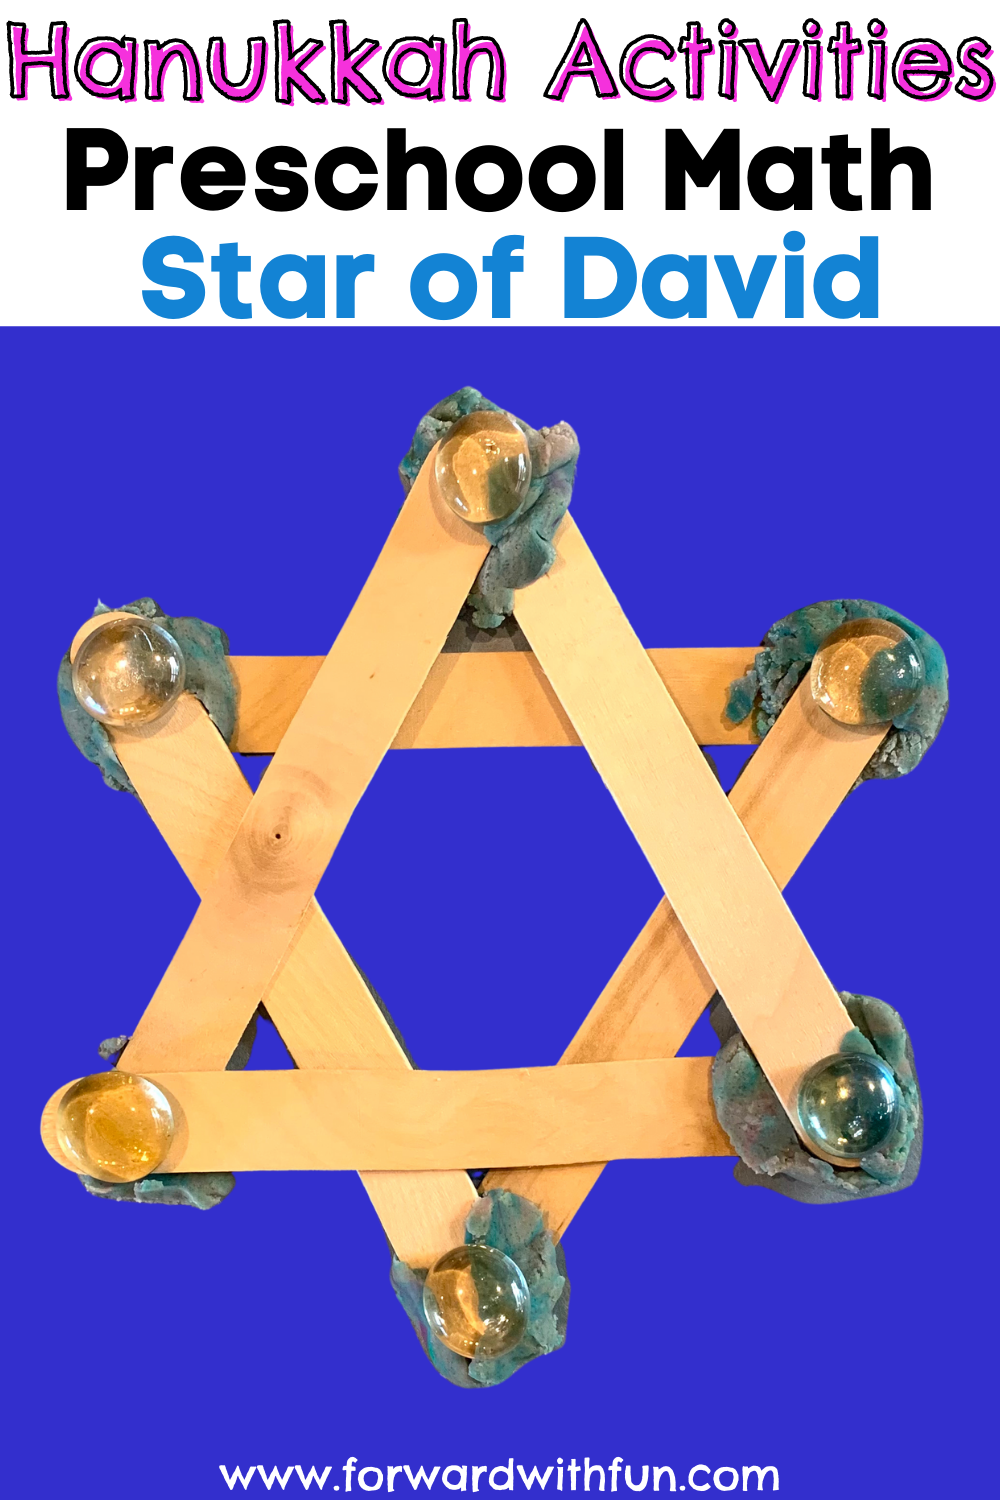 Star of David made with popsicle sticks and play-dough